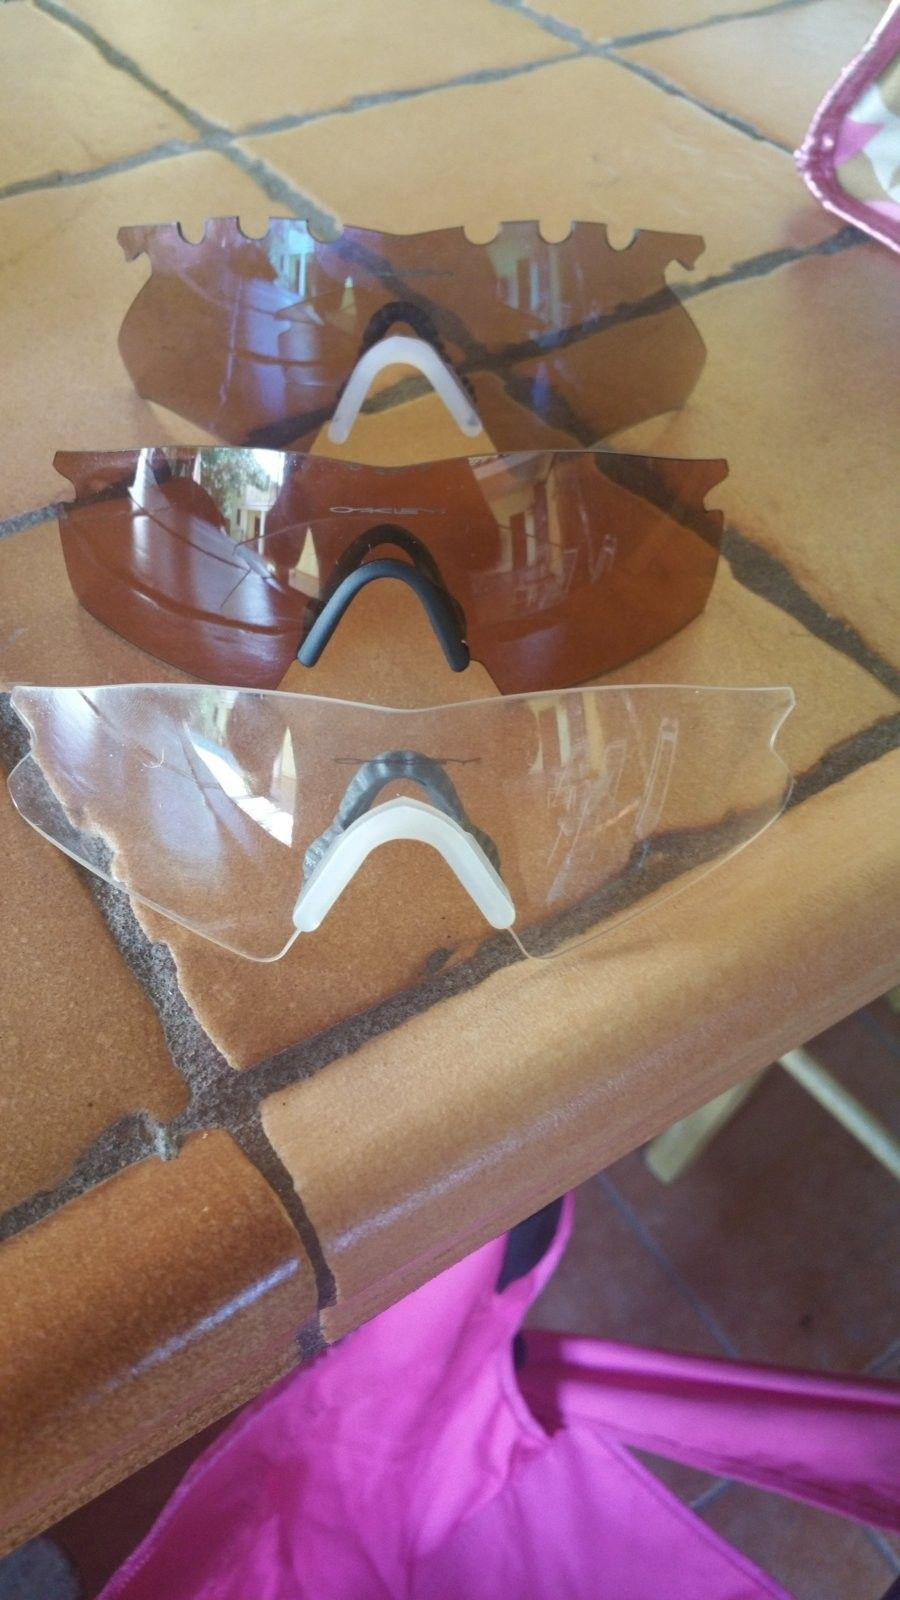 Pro M Frames and Sweep Lenses - 20160917_161758.jpg